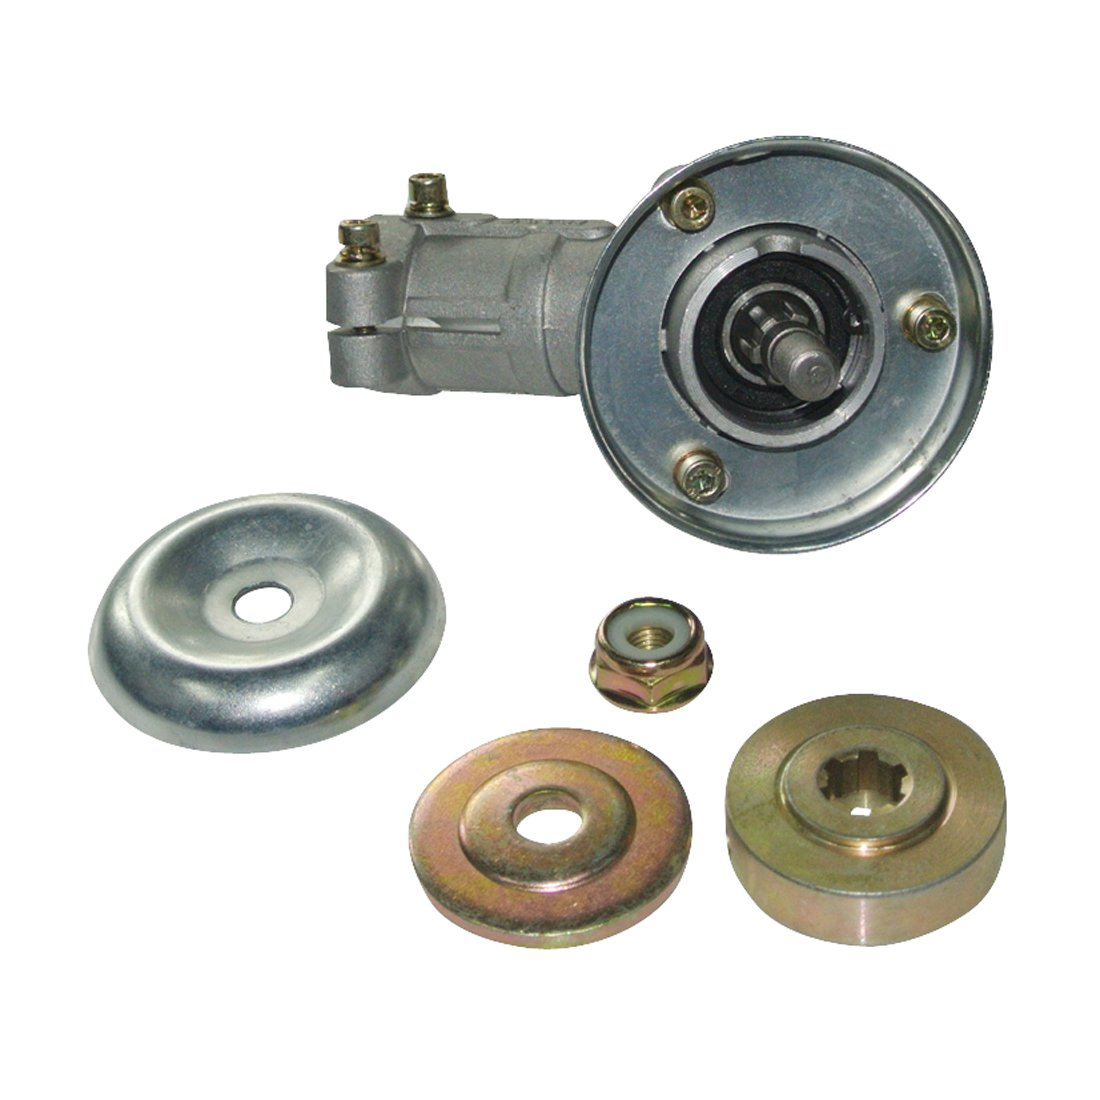 Amazon.com : sthus Gearhead Gearbox 26MM Square Fits for ...